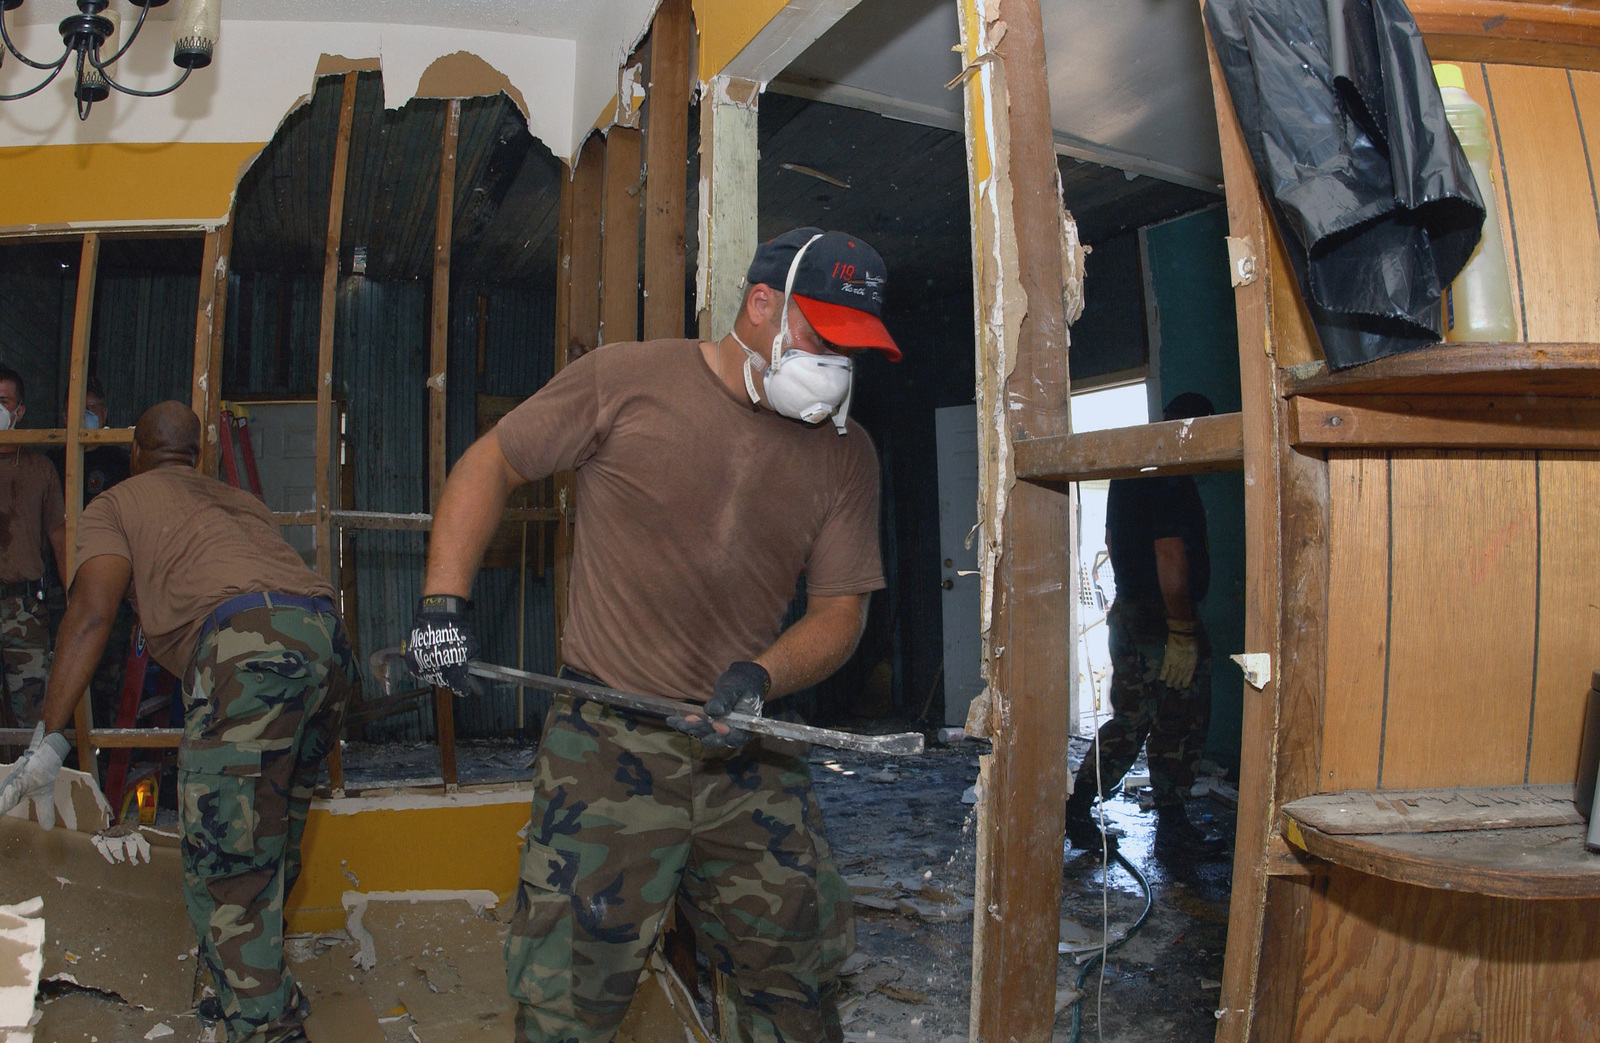 North Dakota Air National Guard (NDANG) SENIOR AIRMAN (SRA) John C. Herman, 119th Fighter Wing (FW), Hector Field (FLD), North Dakota (ND), removes plasterboard from a Hurricane Katrina flood damaged home in D'Iberville, Mississippi (MS). The plasterboard must be removed because of mold that grew on it after it is submerged in the floodwaters from the storm surge